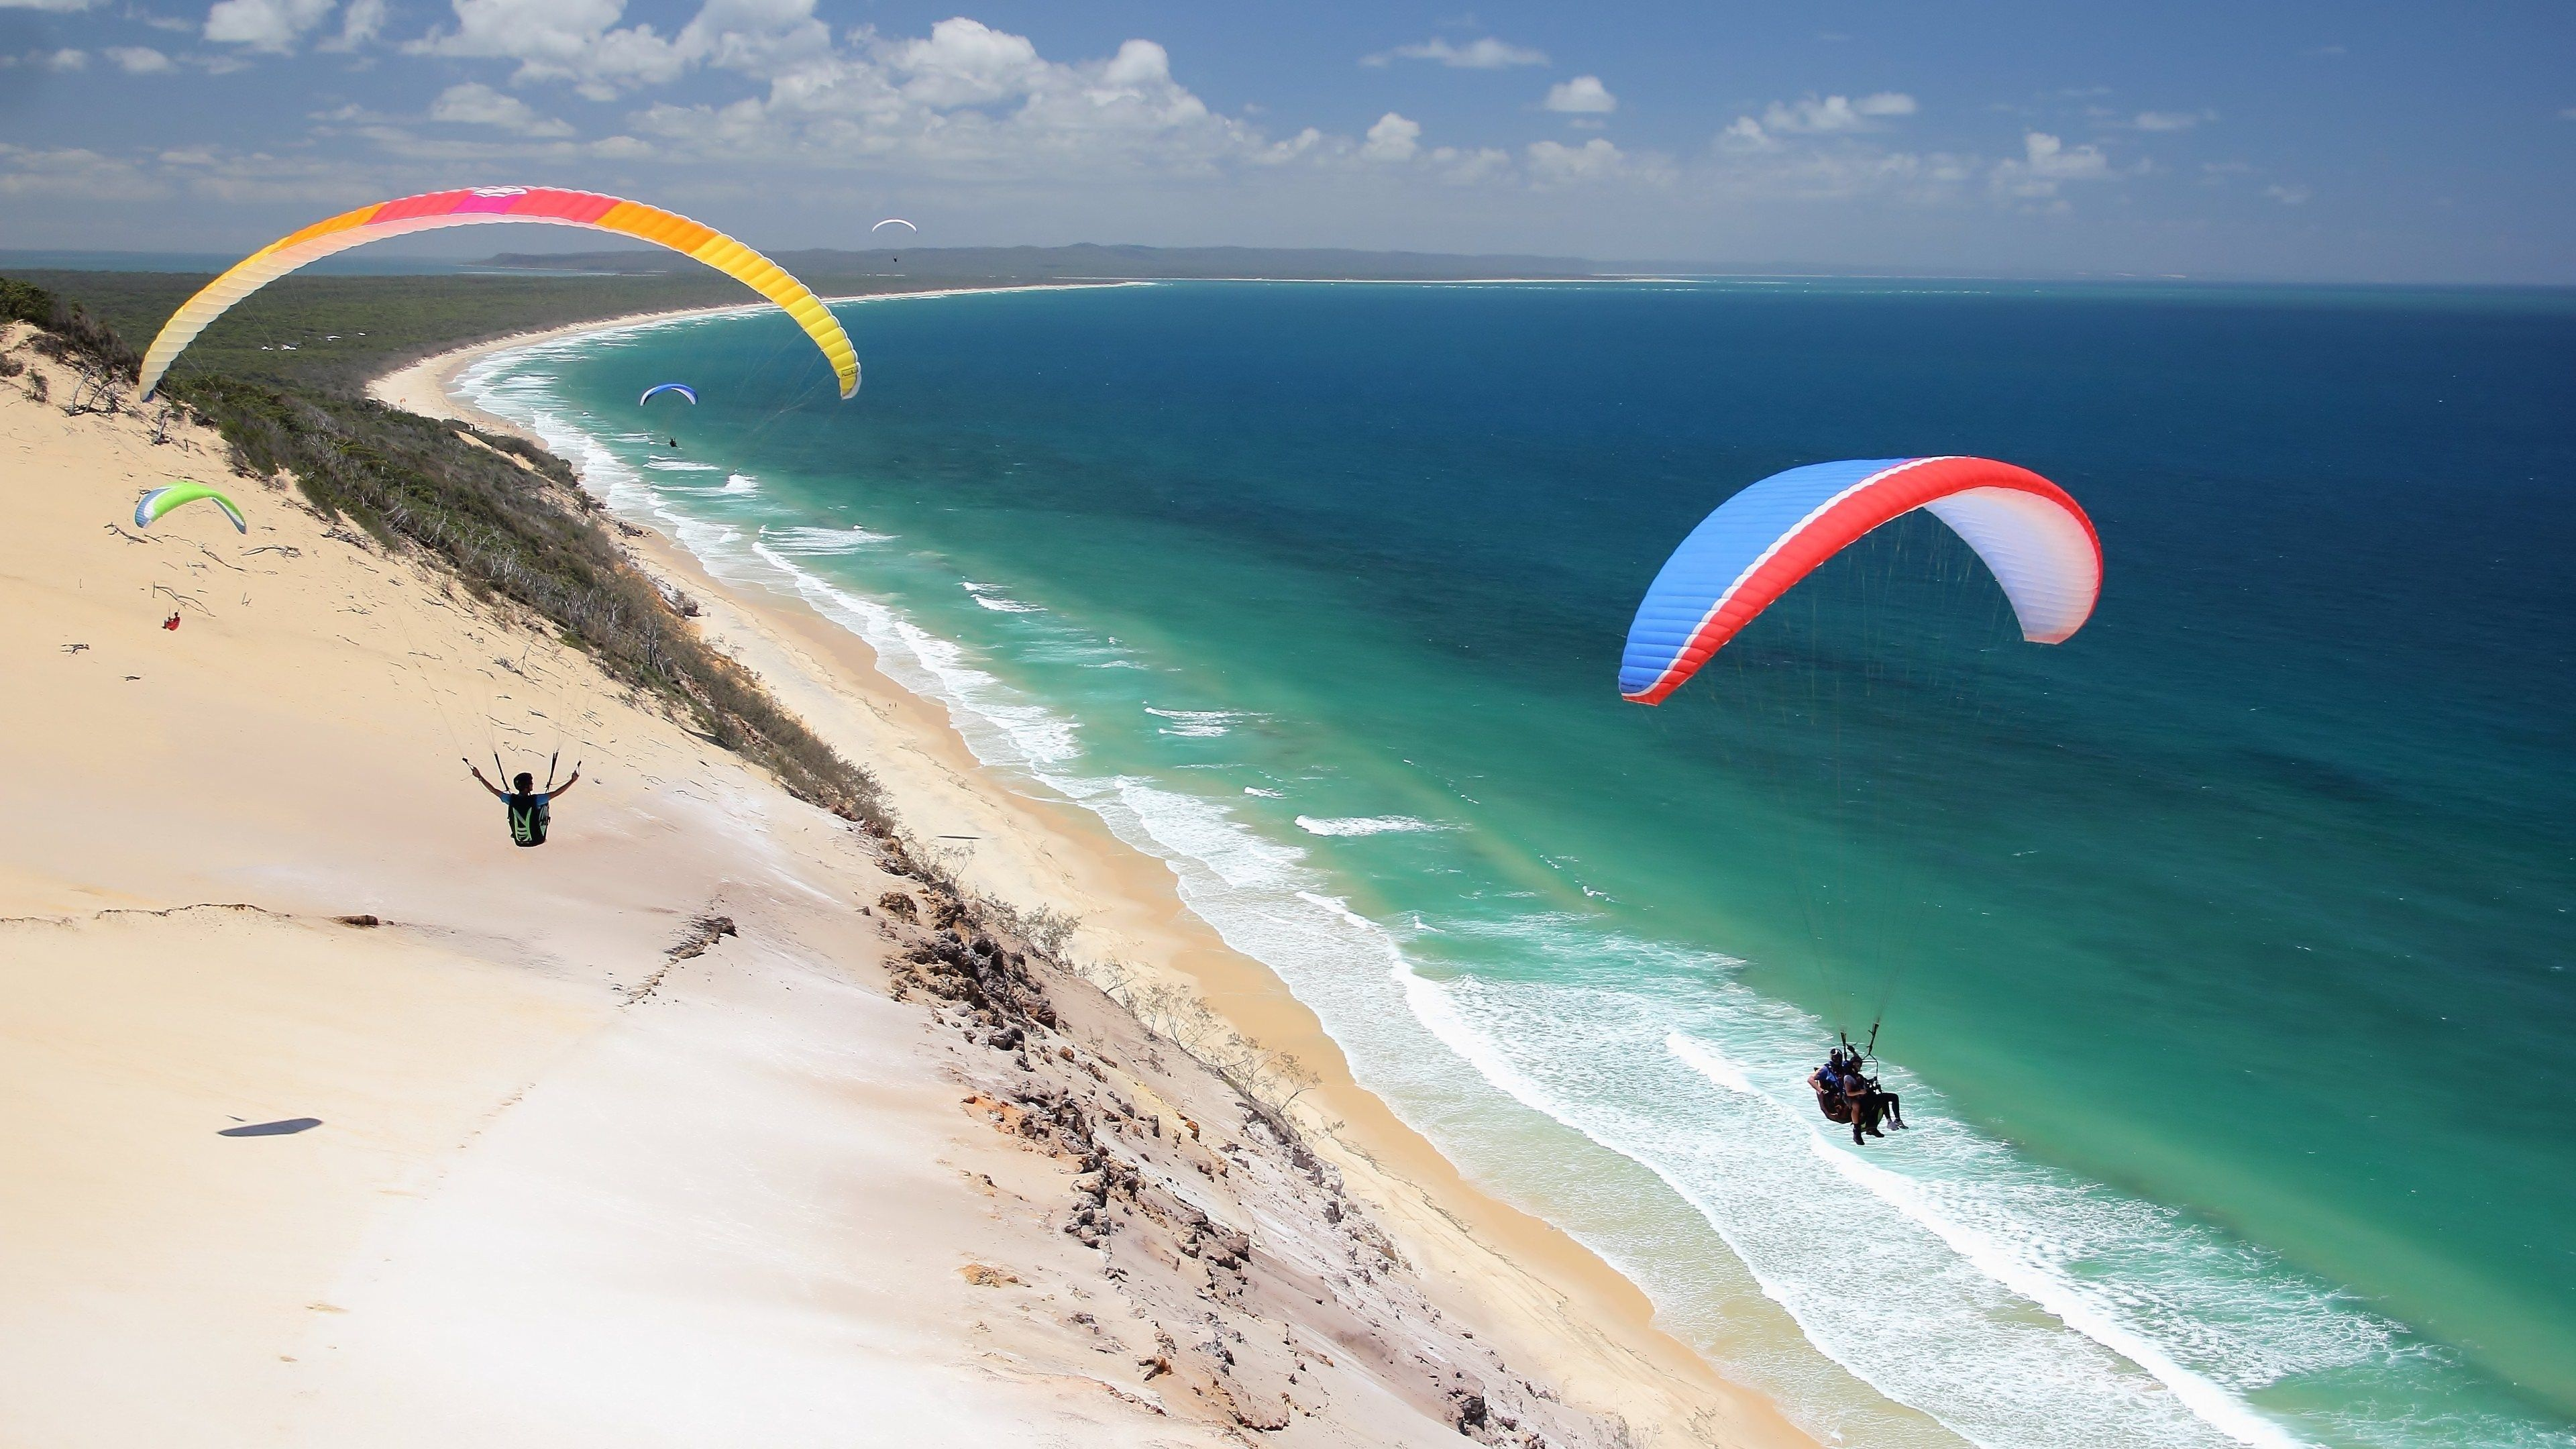 Paragliding Adventure Sports 4k Ultra Hd Wallpaper